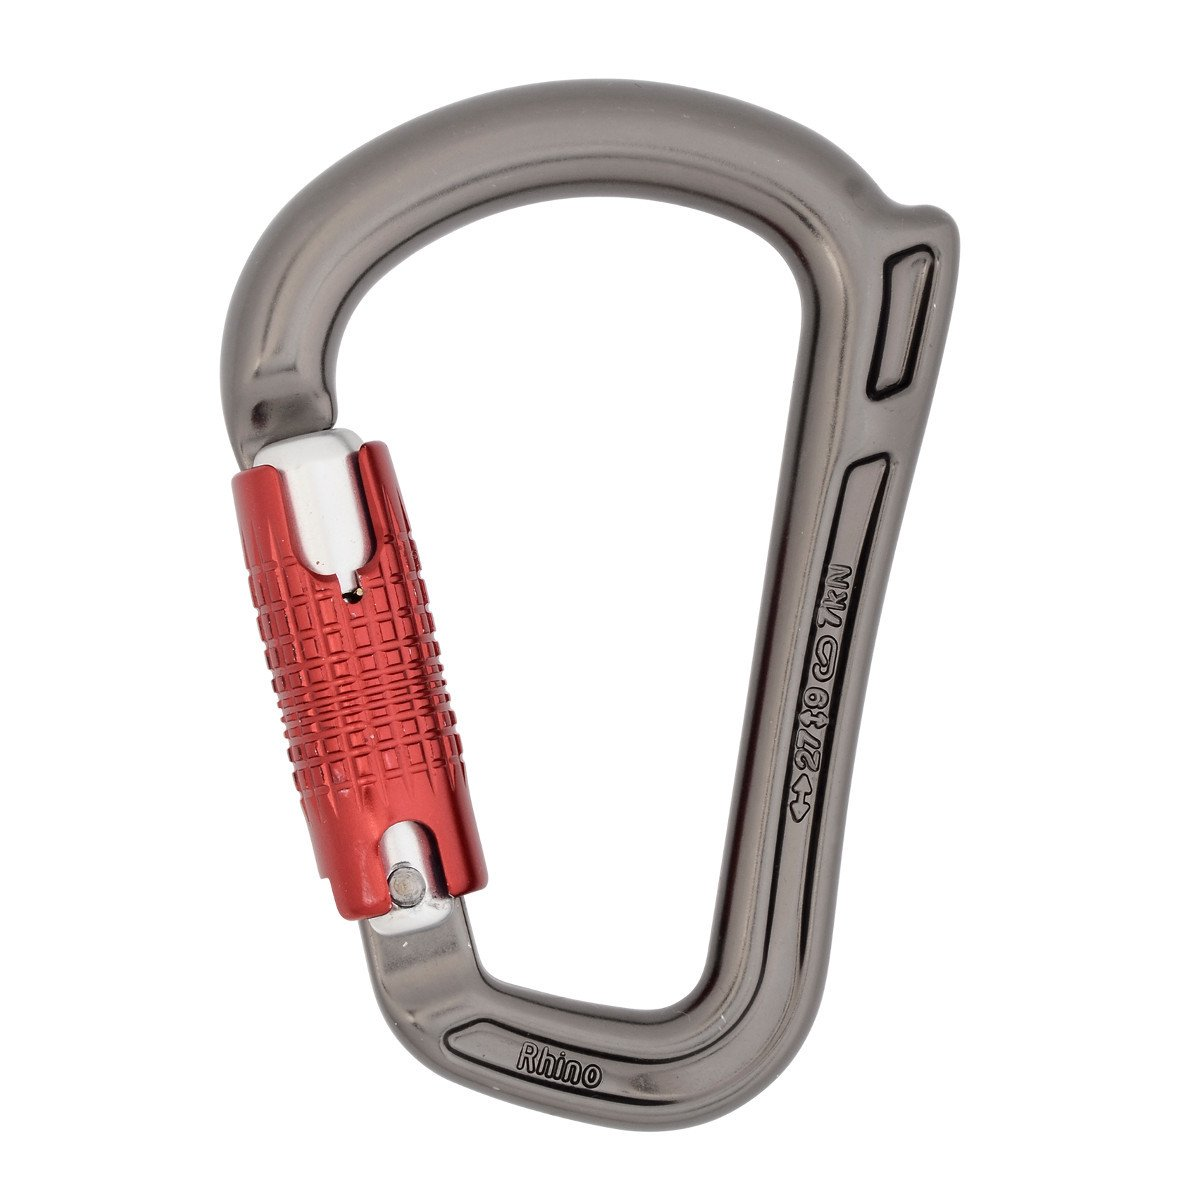 DMM Rhino HMS Quicklock Carabiner, in gun metal grey colour with red twistlock